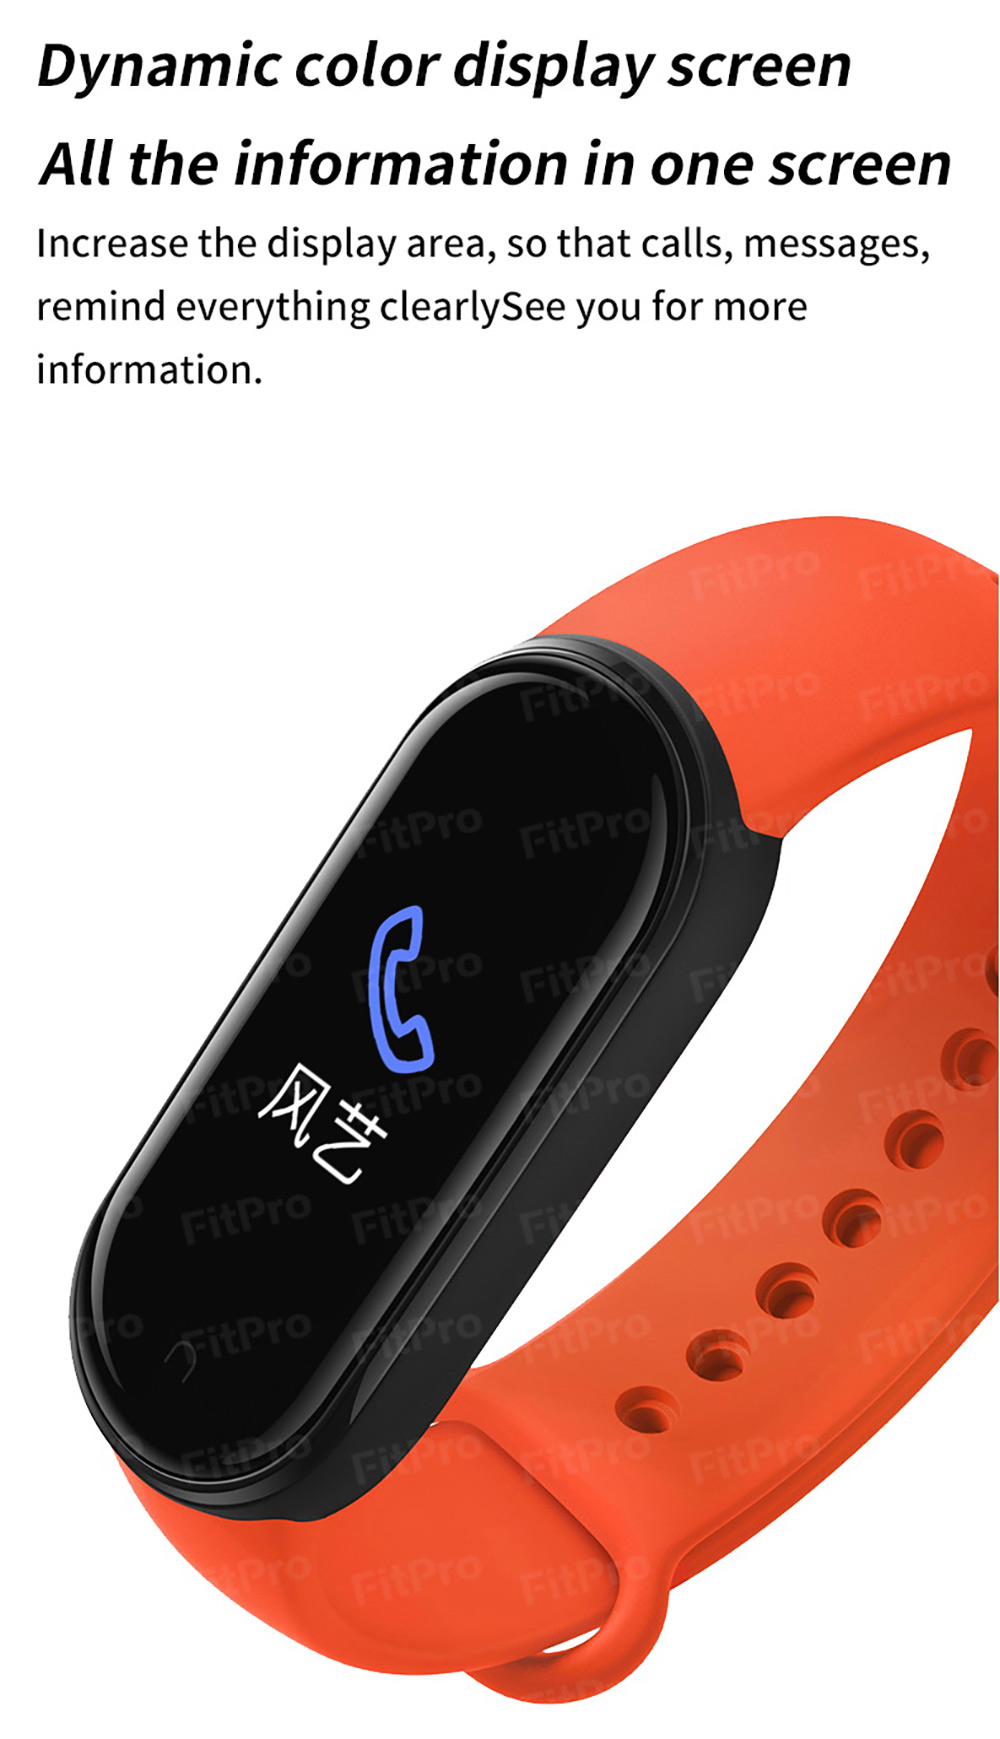 Gocomma M5 Smart Wristband Continuous Blood Pressure Oxygen Monitor Wristband Message App Push Fitness Tracker Color Screen - Black